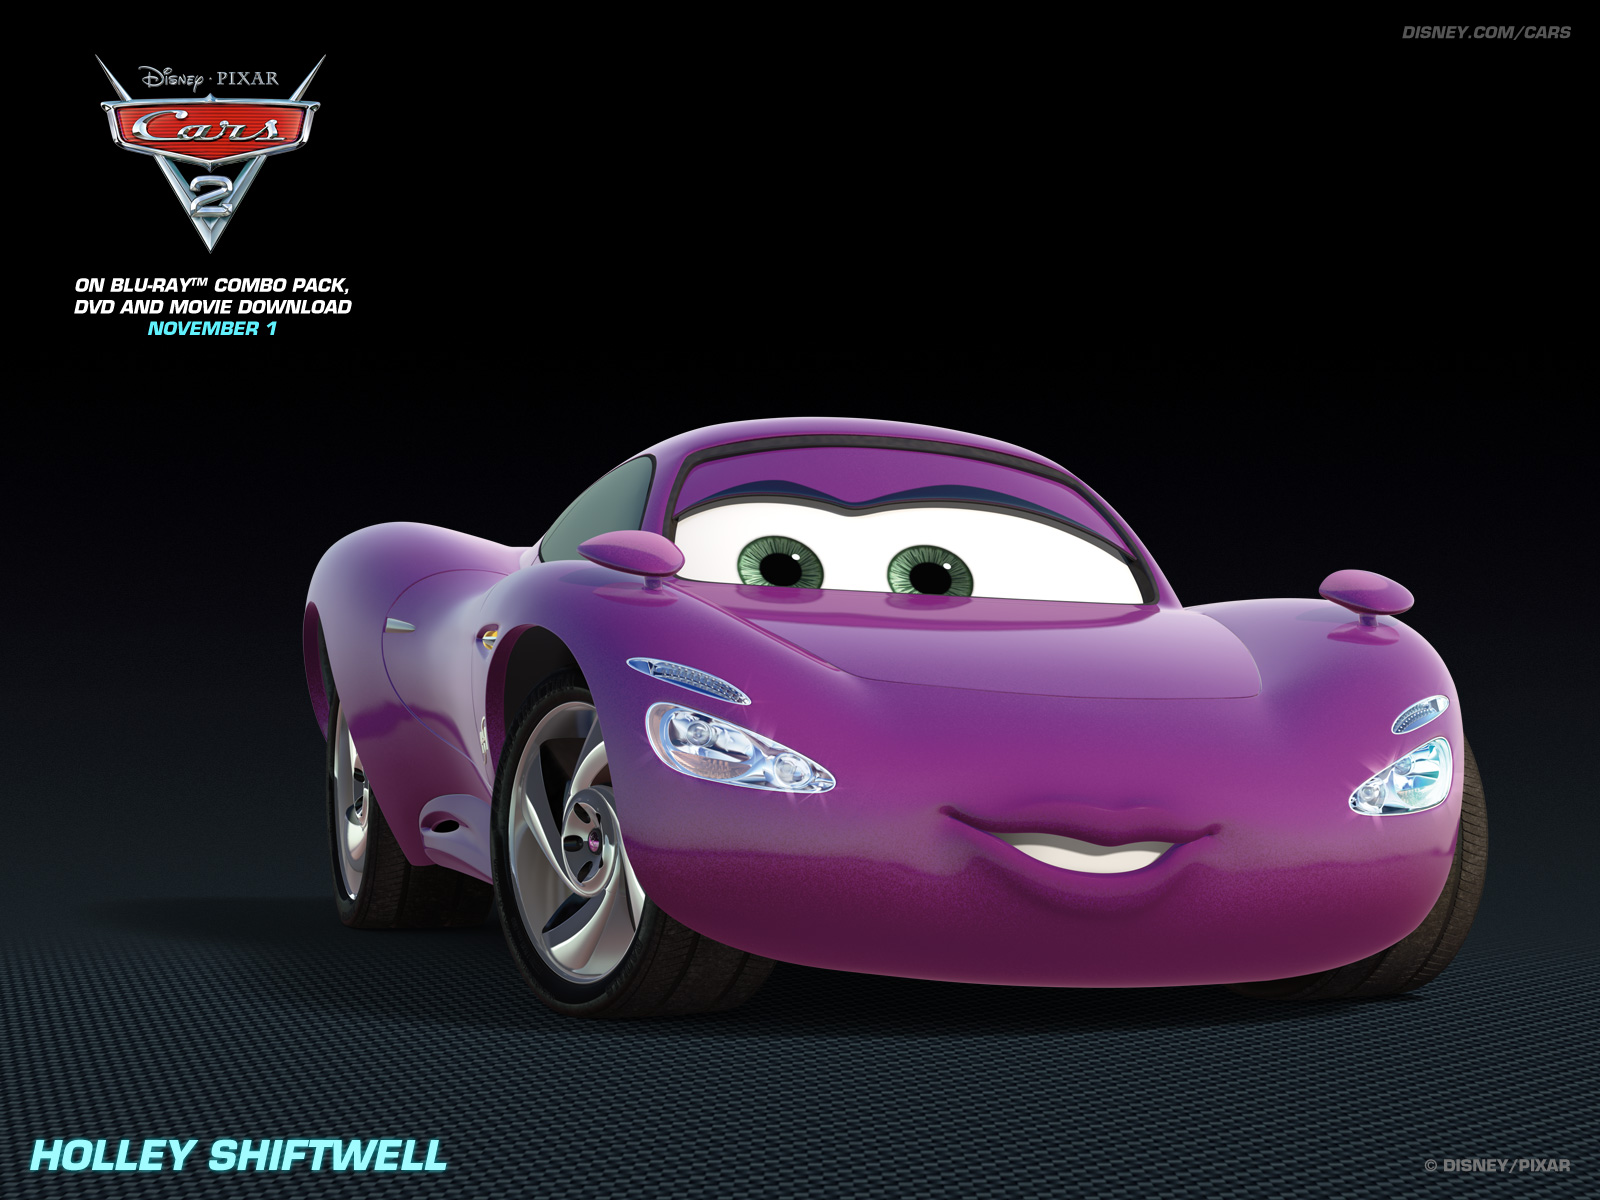 Disney Pixar Cars 2 Images Holley Shiftwell Hd Wallpaper And